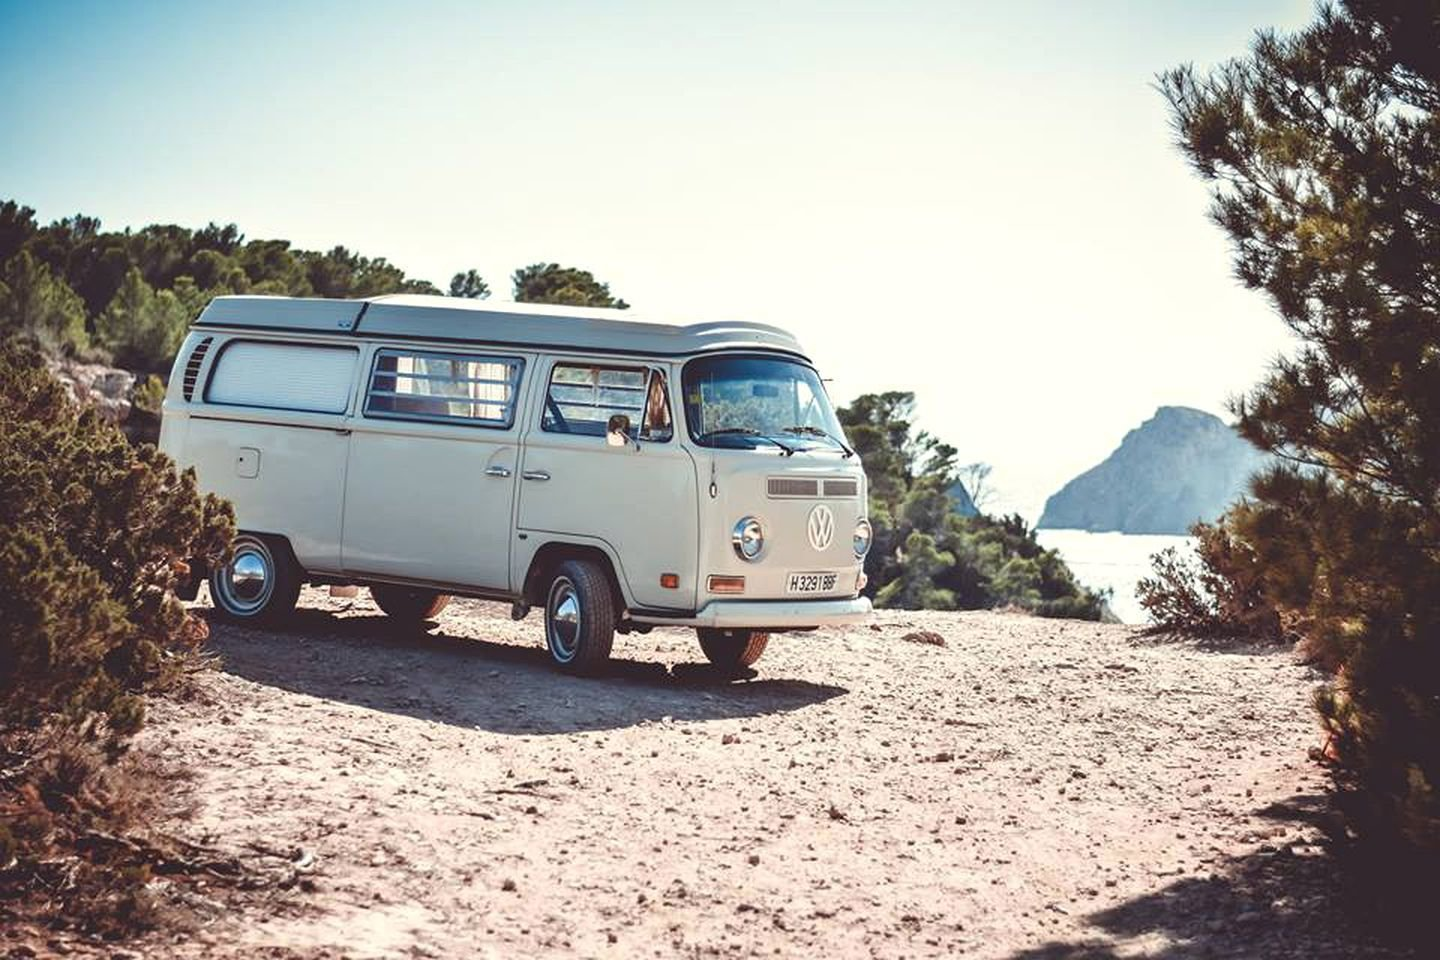 Explore Ibiza's picturesque coast while holed up in one of these classic VW camper vans.  Photo 9 of 18 in 17 Kick-Ass Campers and Trailers You Can Rent From $45 a Night